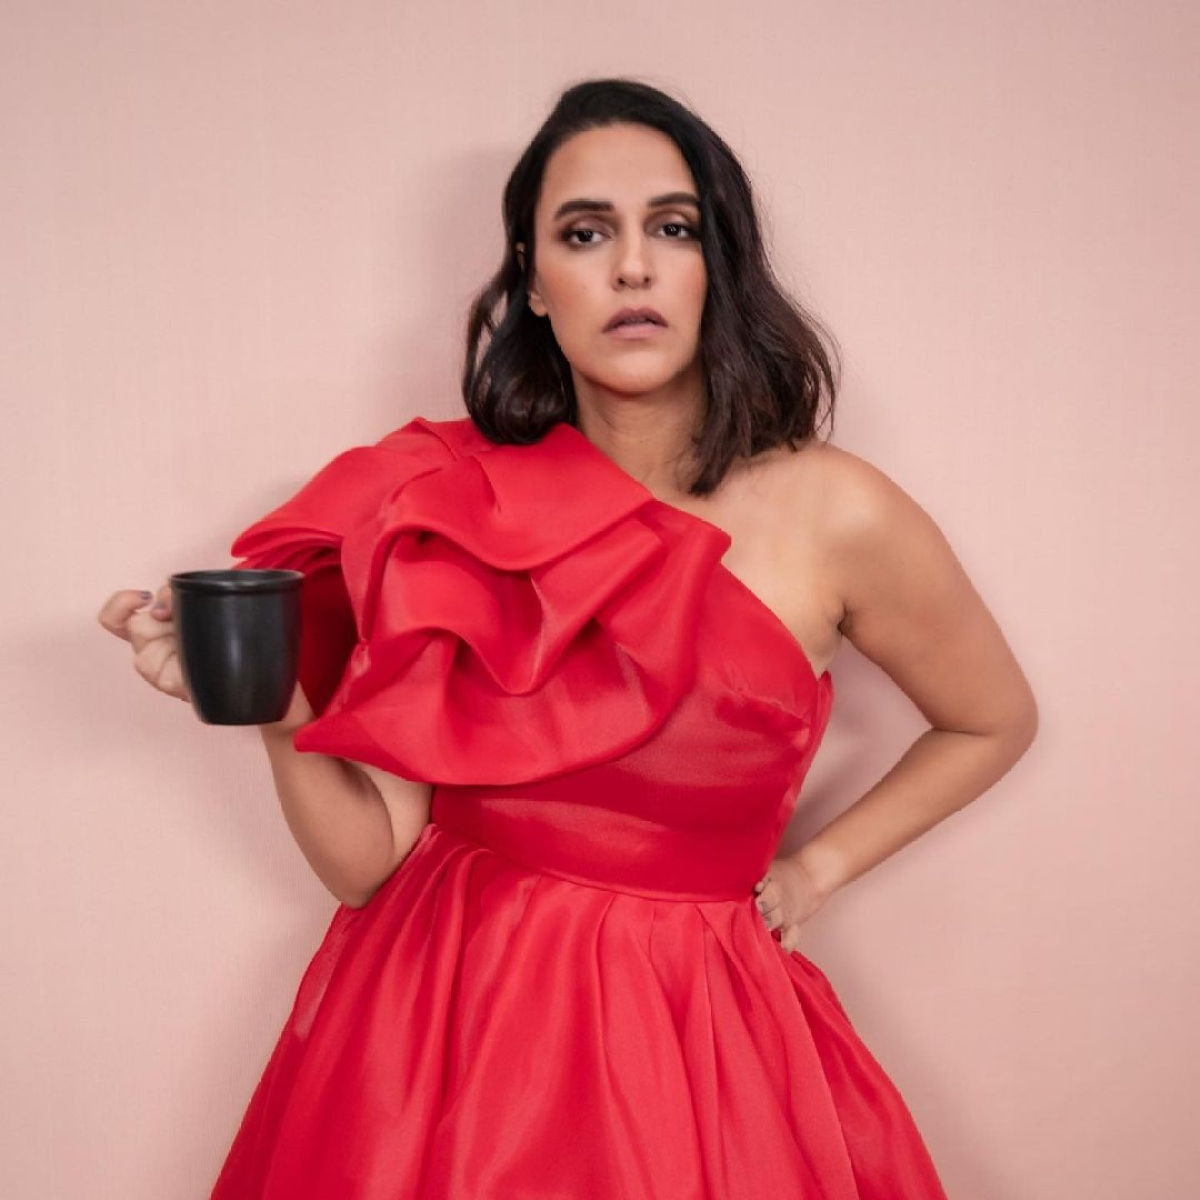 'Their wish Didi': Neha Dhupia trolled for video urging content creators to keep it original